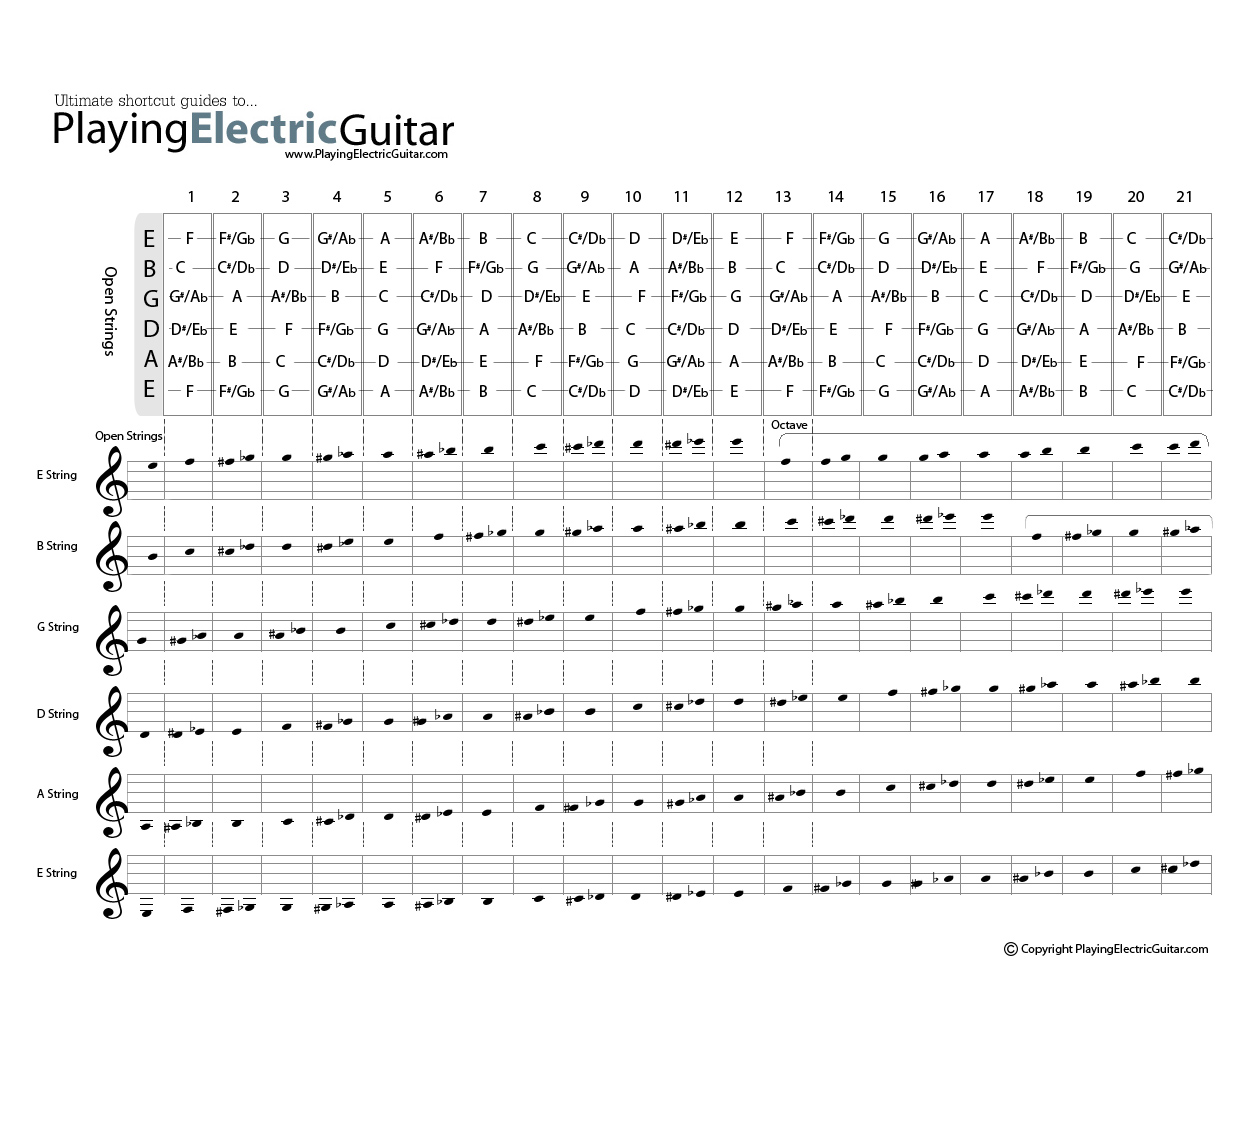 Guitar Fretboard Chart from PlayingElectricGuitar.com